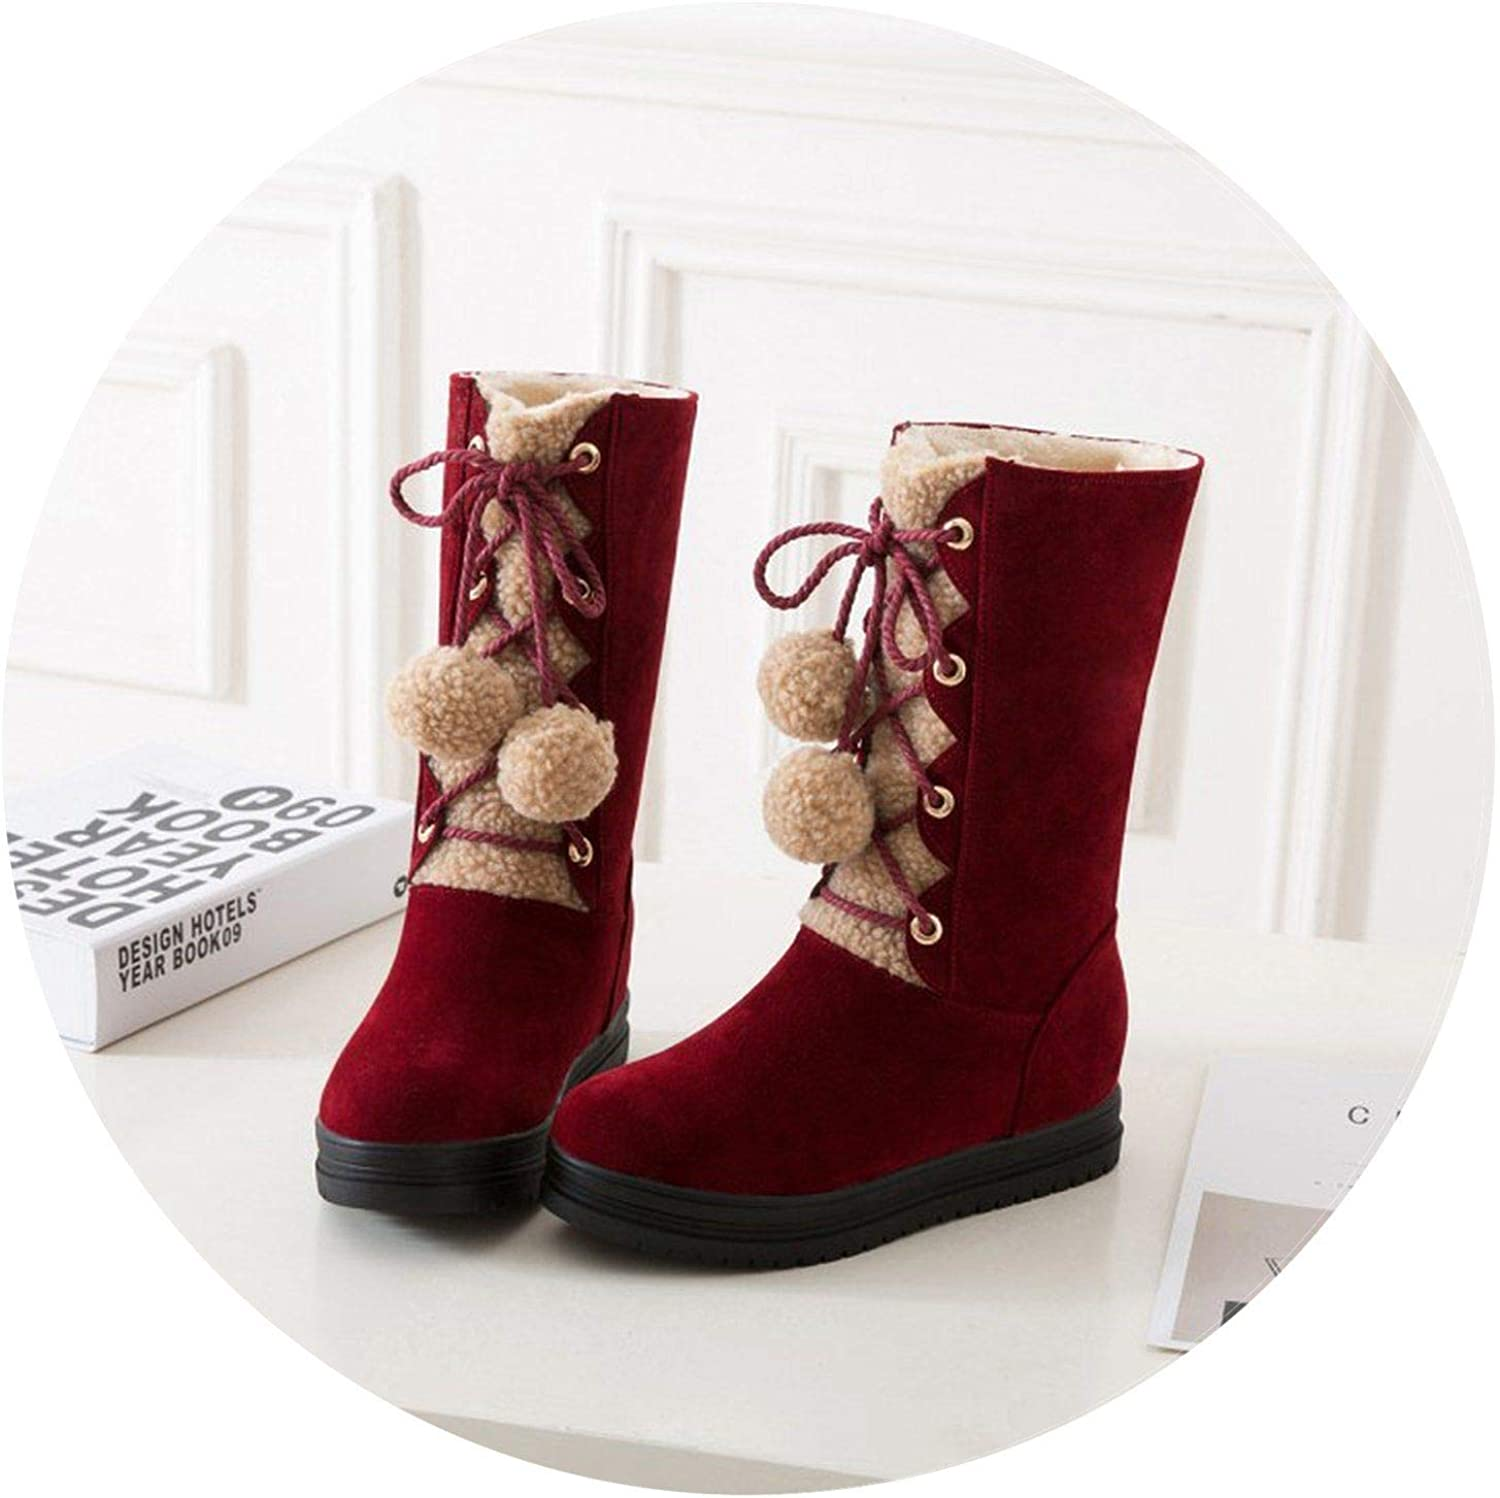 Summer-lavender Snow Boots Warmer Plush Platform Winter Flat shoes Fur Ball Fluffy Mid-Calf Booties Lace-up shoes